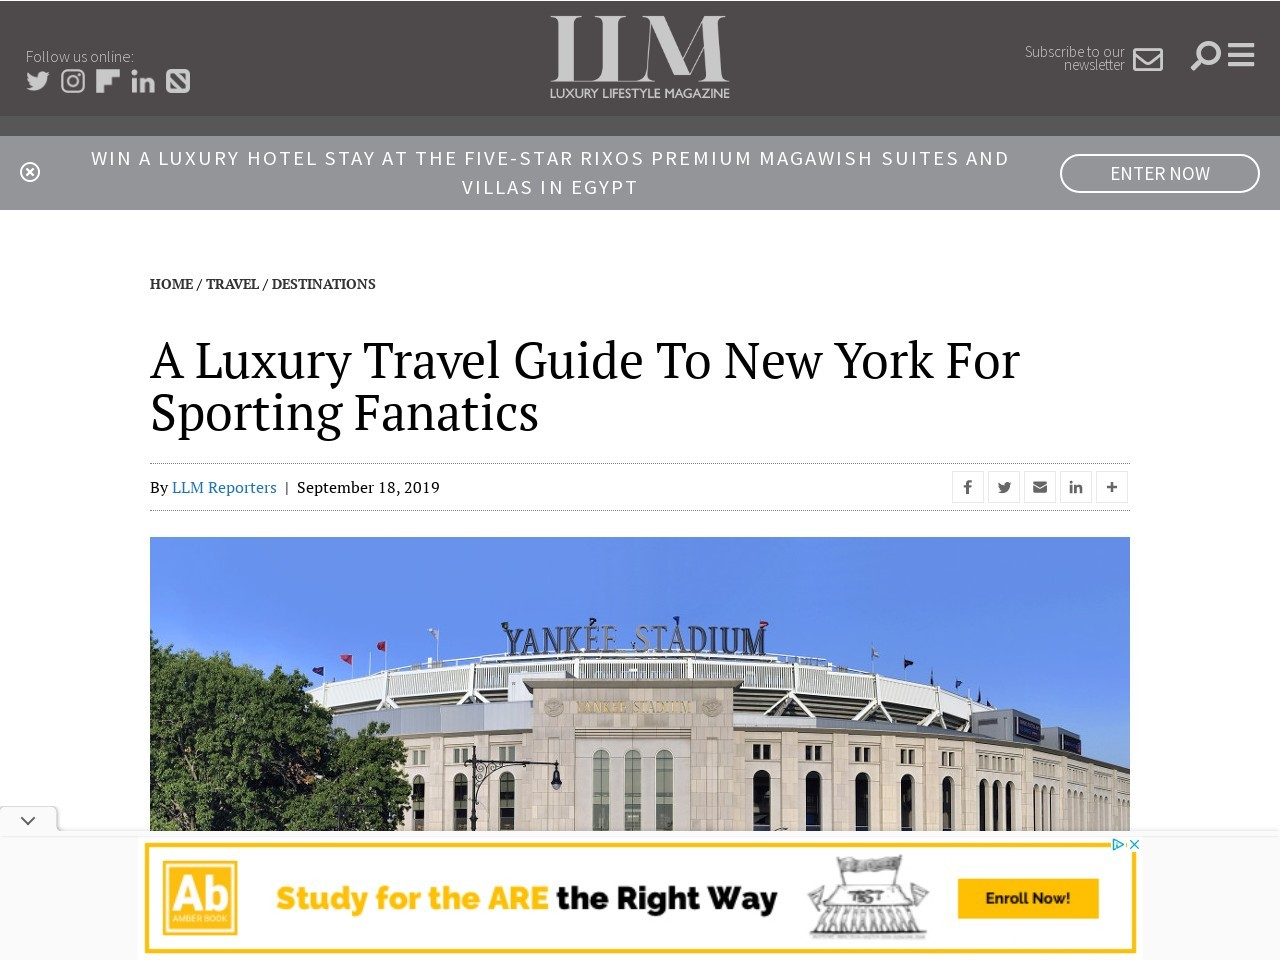 A luxury travel guide to New York for sporting fanatics